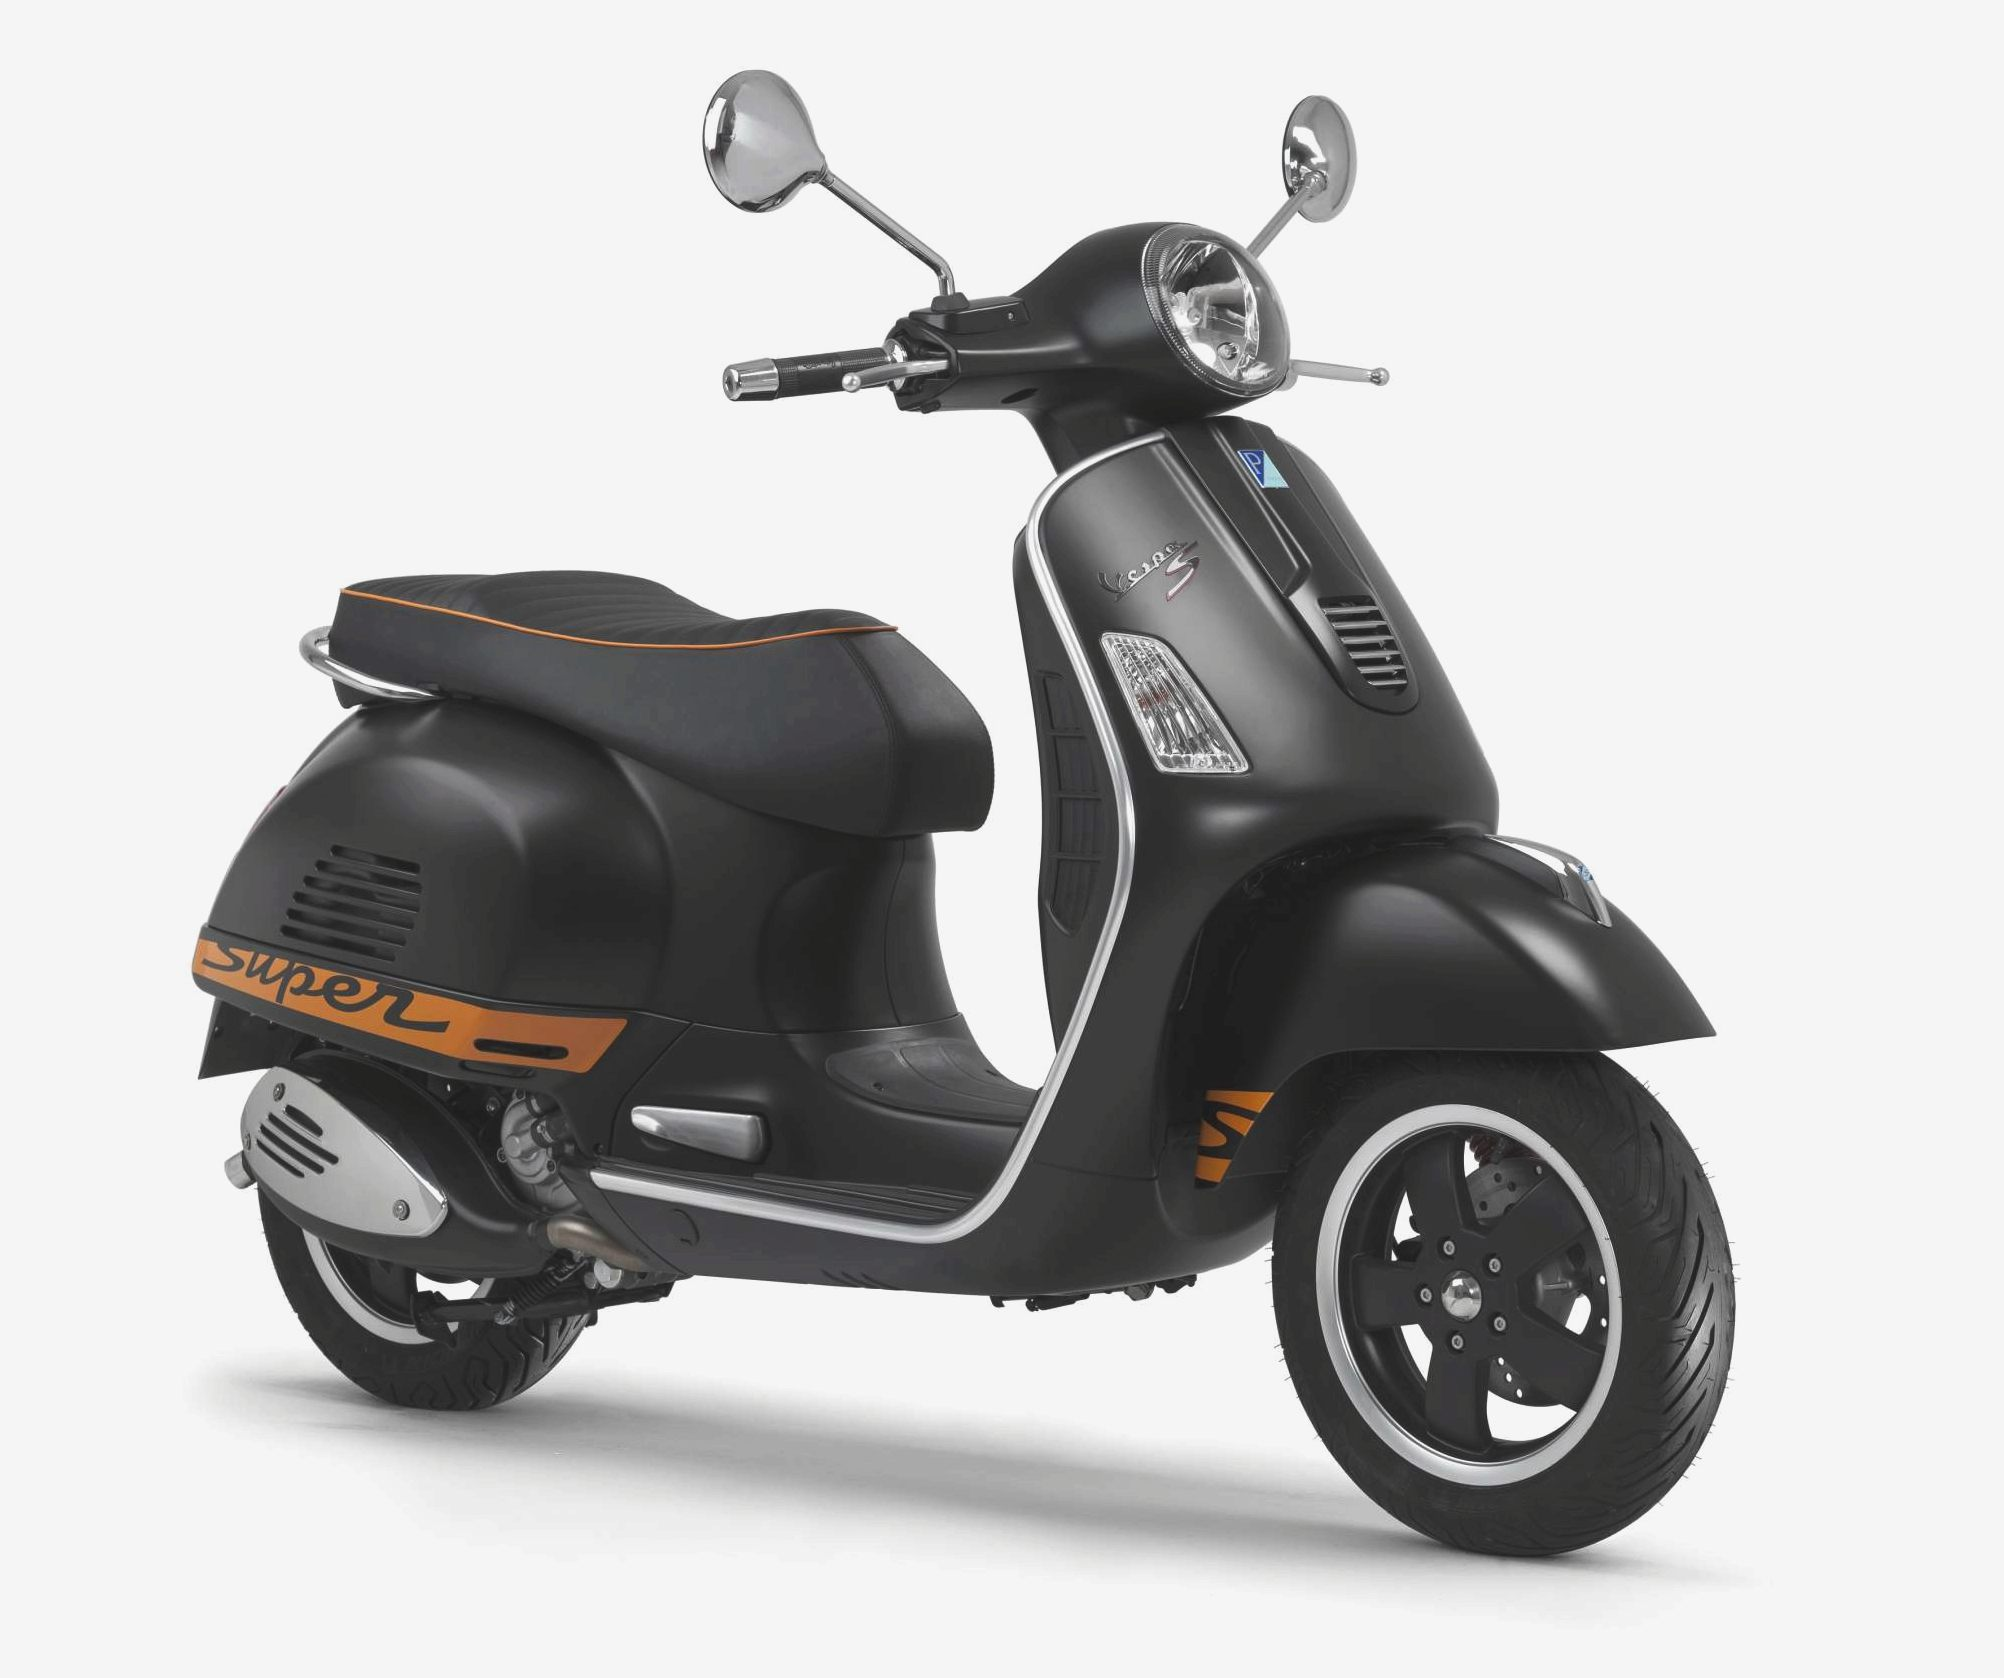 2011 vespa gts supersport 125 ie pics specs and. Black Bedroom Furniture Sets. Home Design Ideas